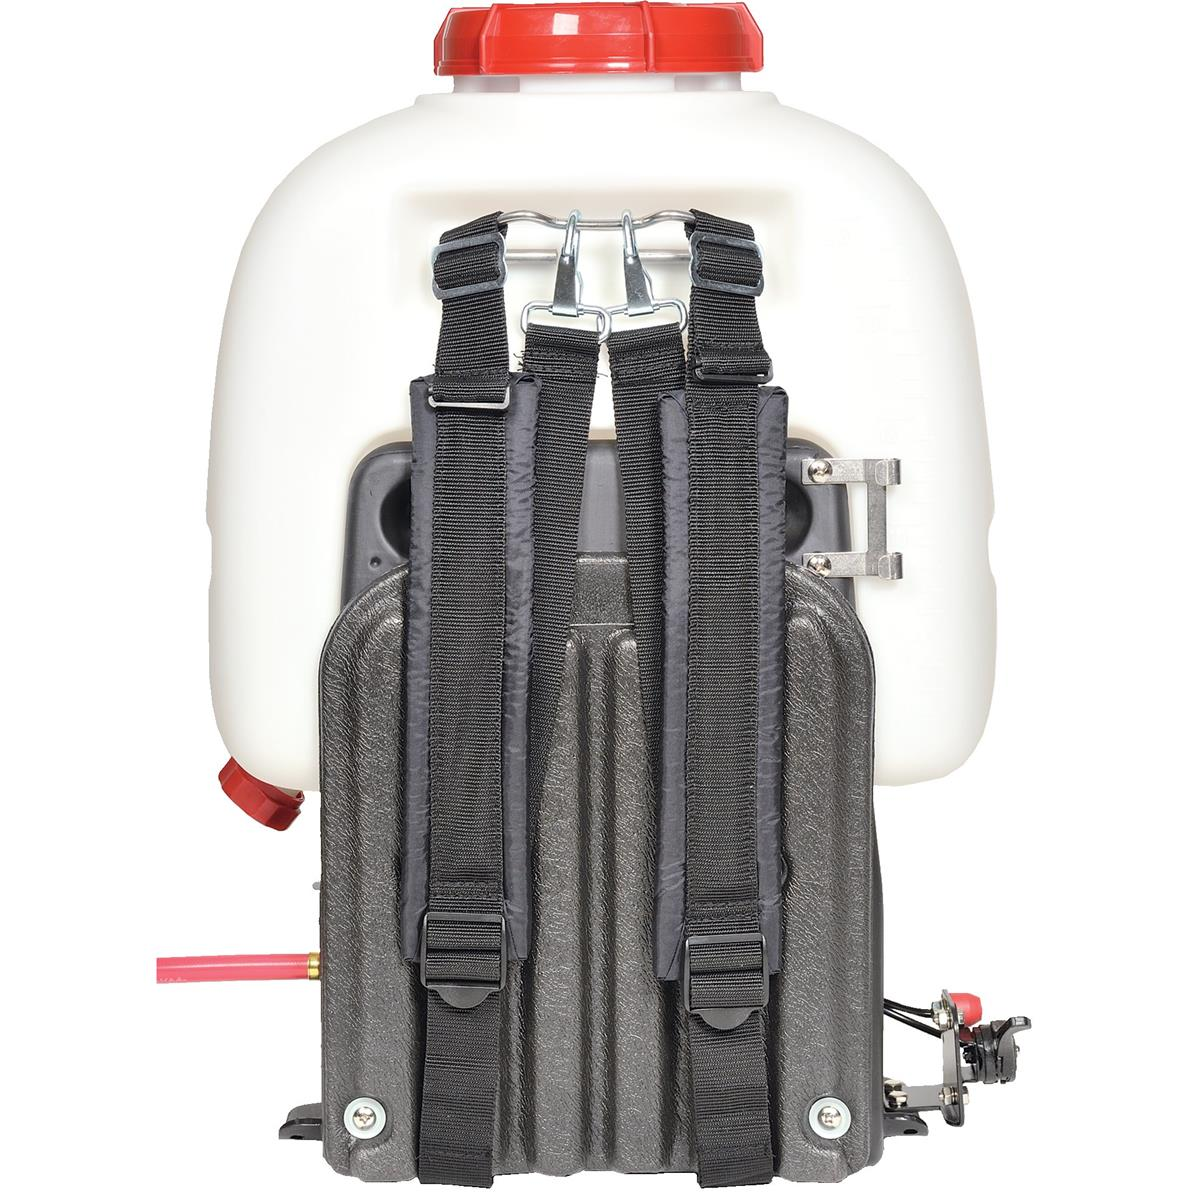 Solo High-Pressure Motorized 5-gal. Backpack Sprayer